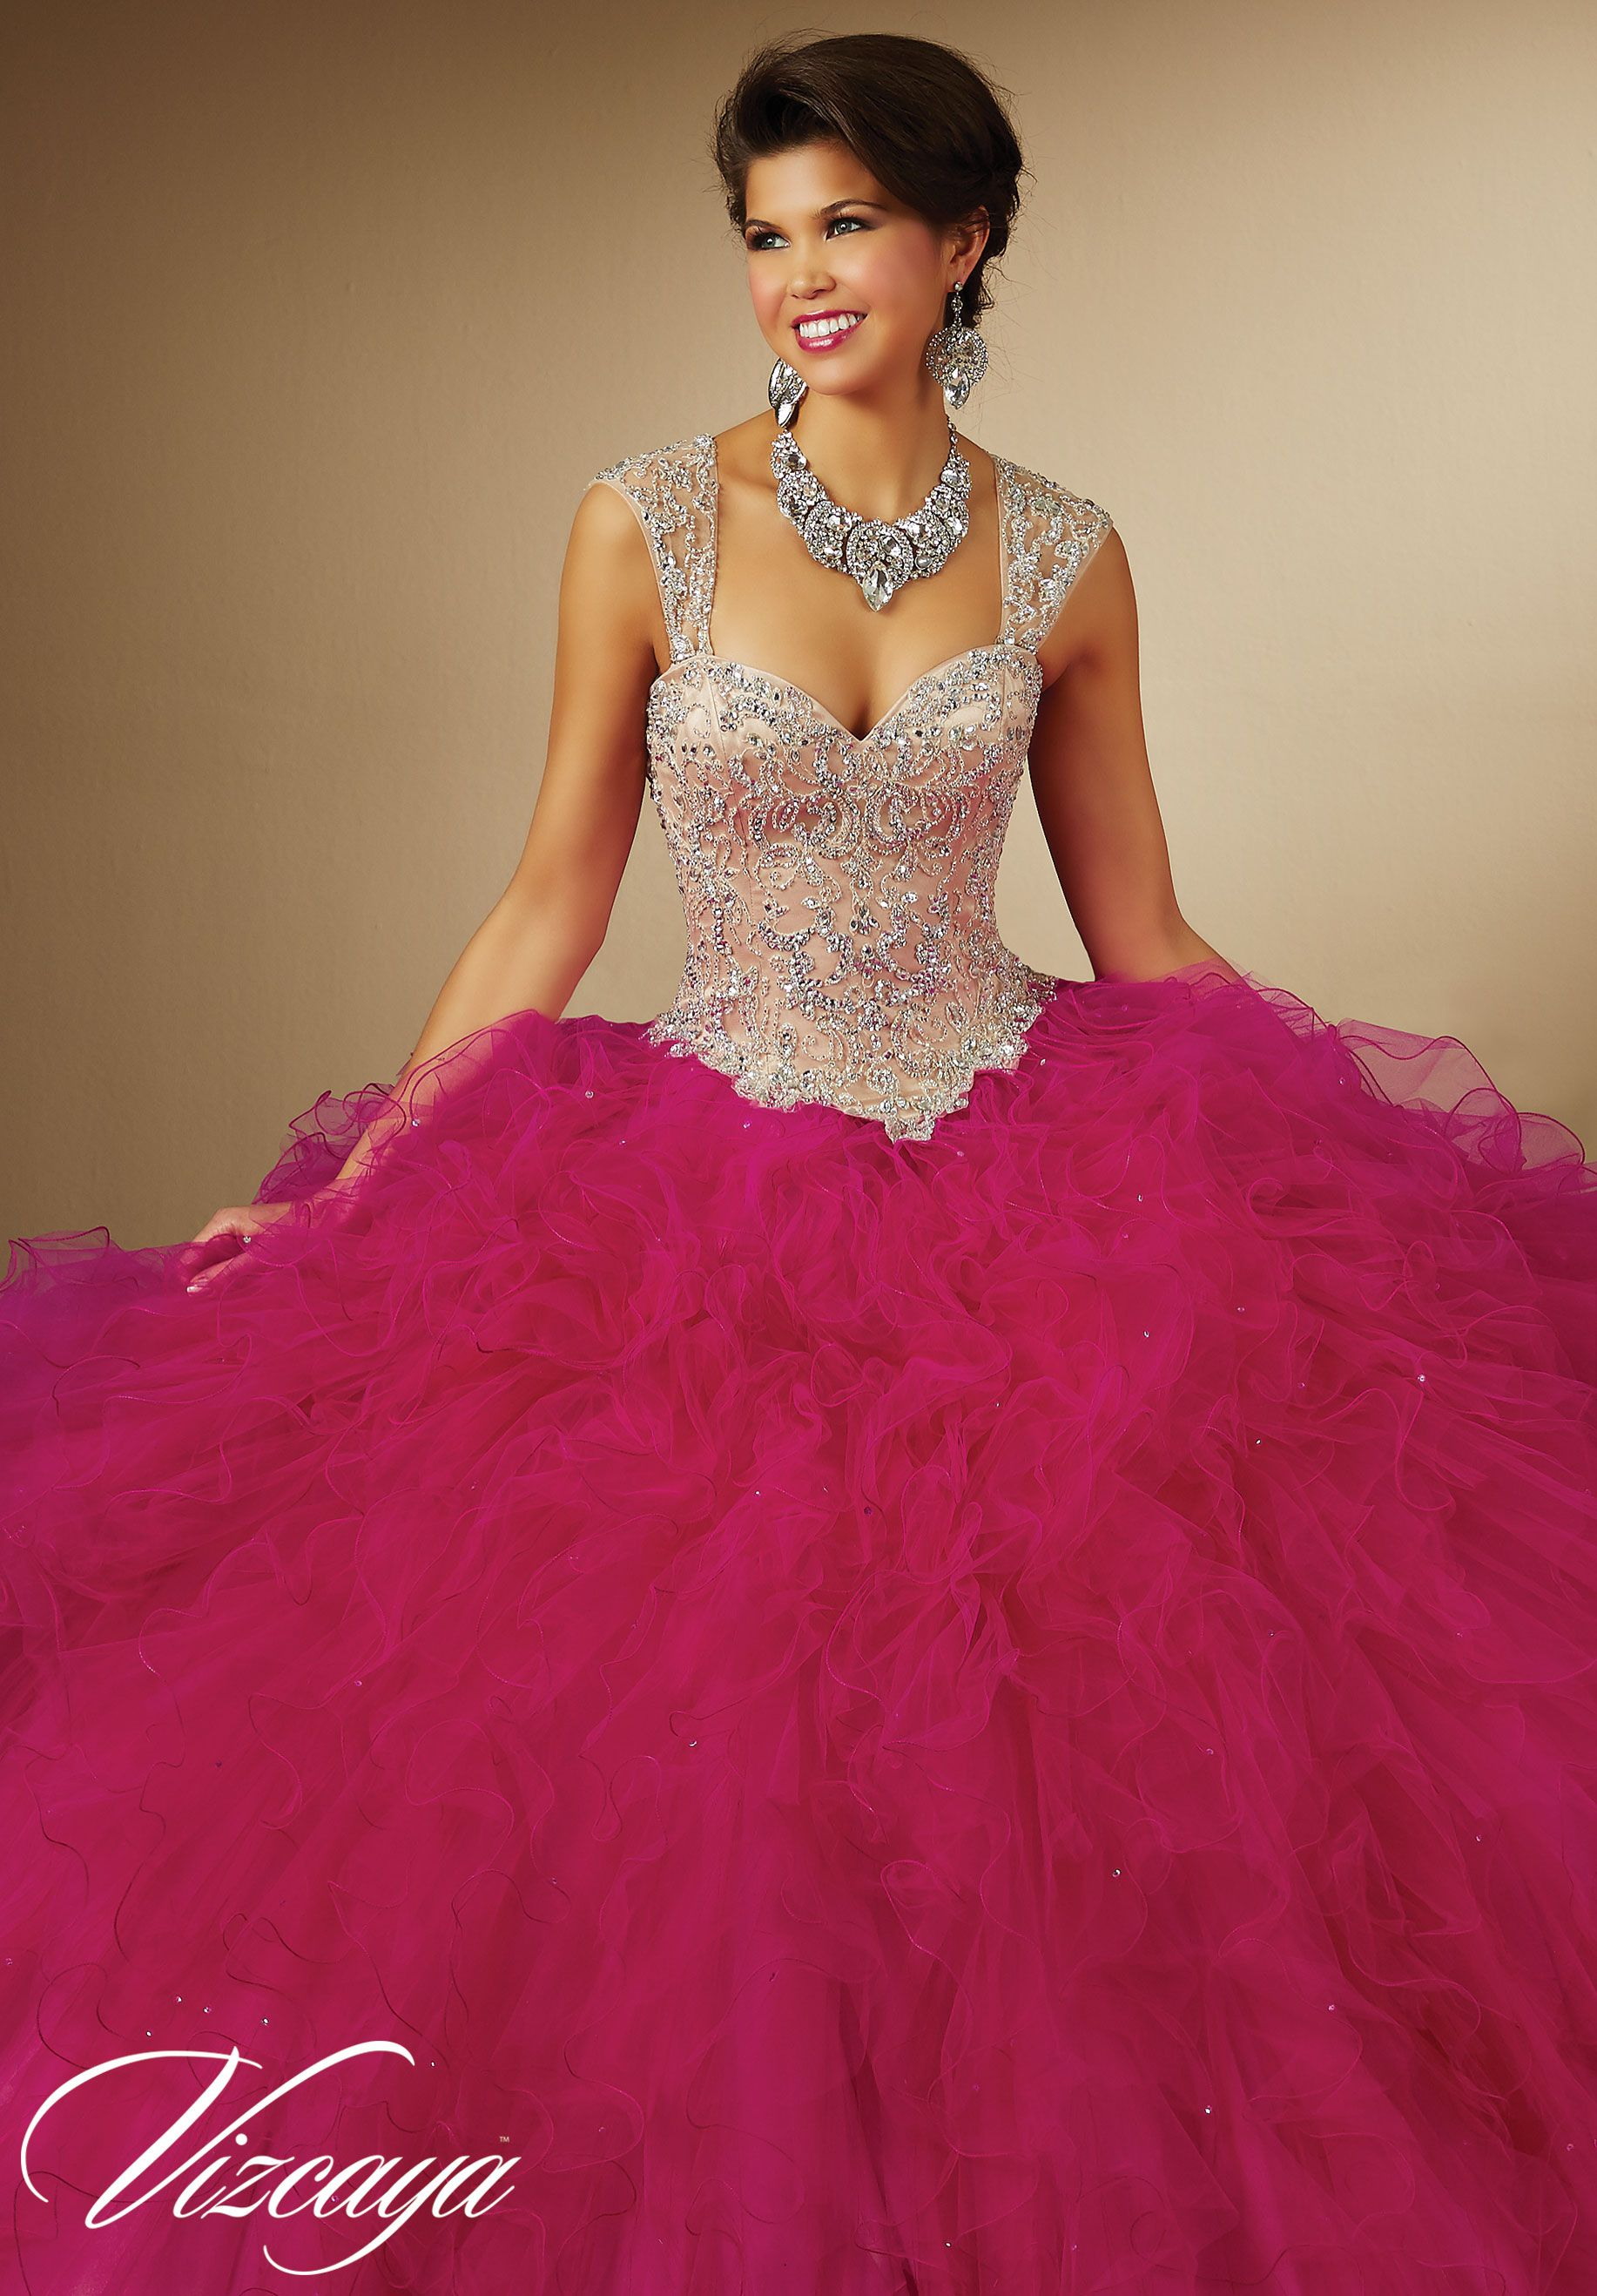 009da55ccd0 Pink Fuchsia Quinceanera Dresses by Vizcaya Morilee designed by Madeline  Gardner. Two-Tone Ruffled Tulle with Beading Princess Ball Gown. Style  89054.